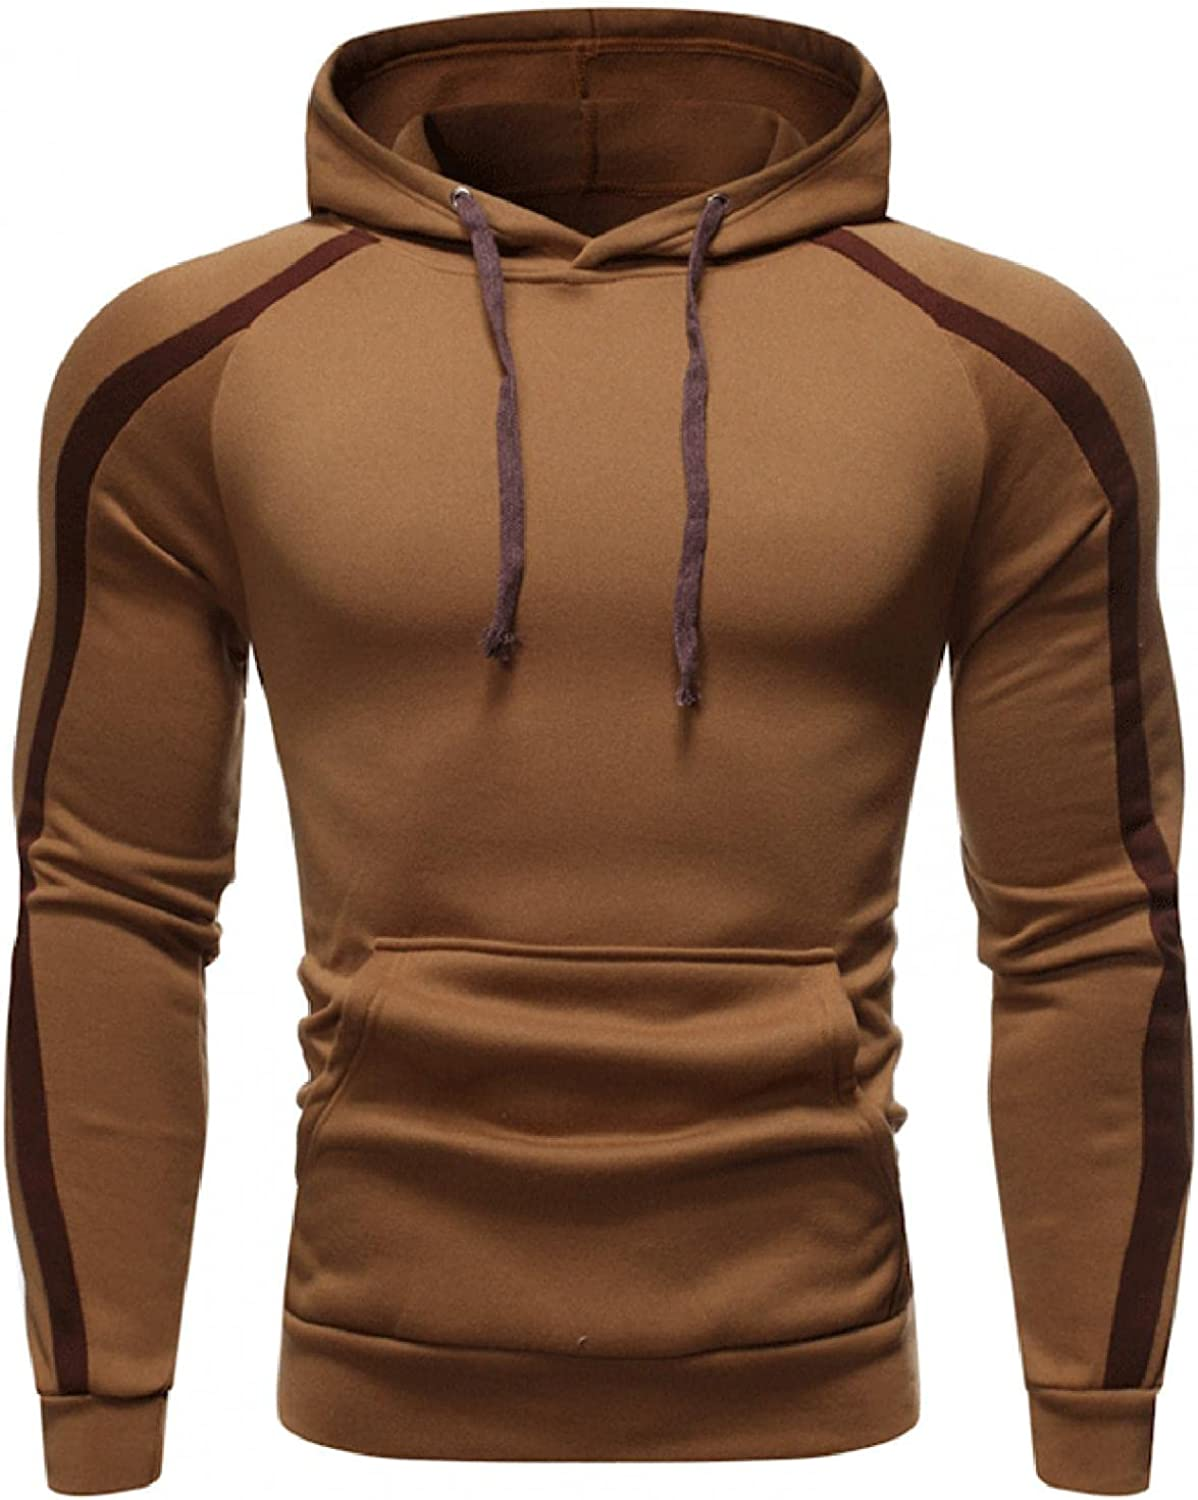 Hoodies for Men Men's Fashion Hoodies Sweatshirts Autumn Winter Casual Long Sleeve Sports Hooded Tight Top Blouse